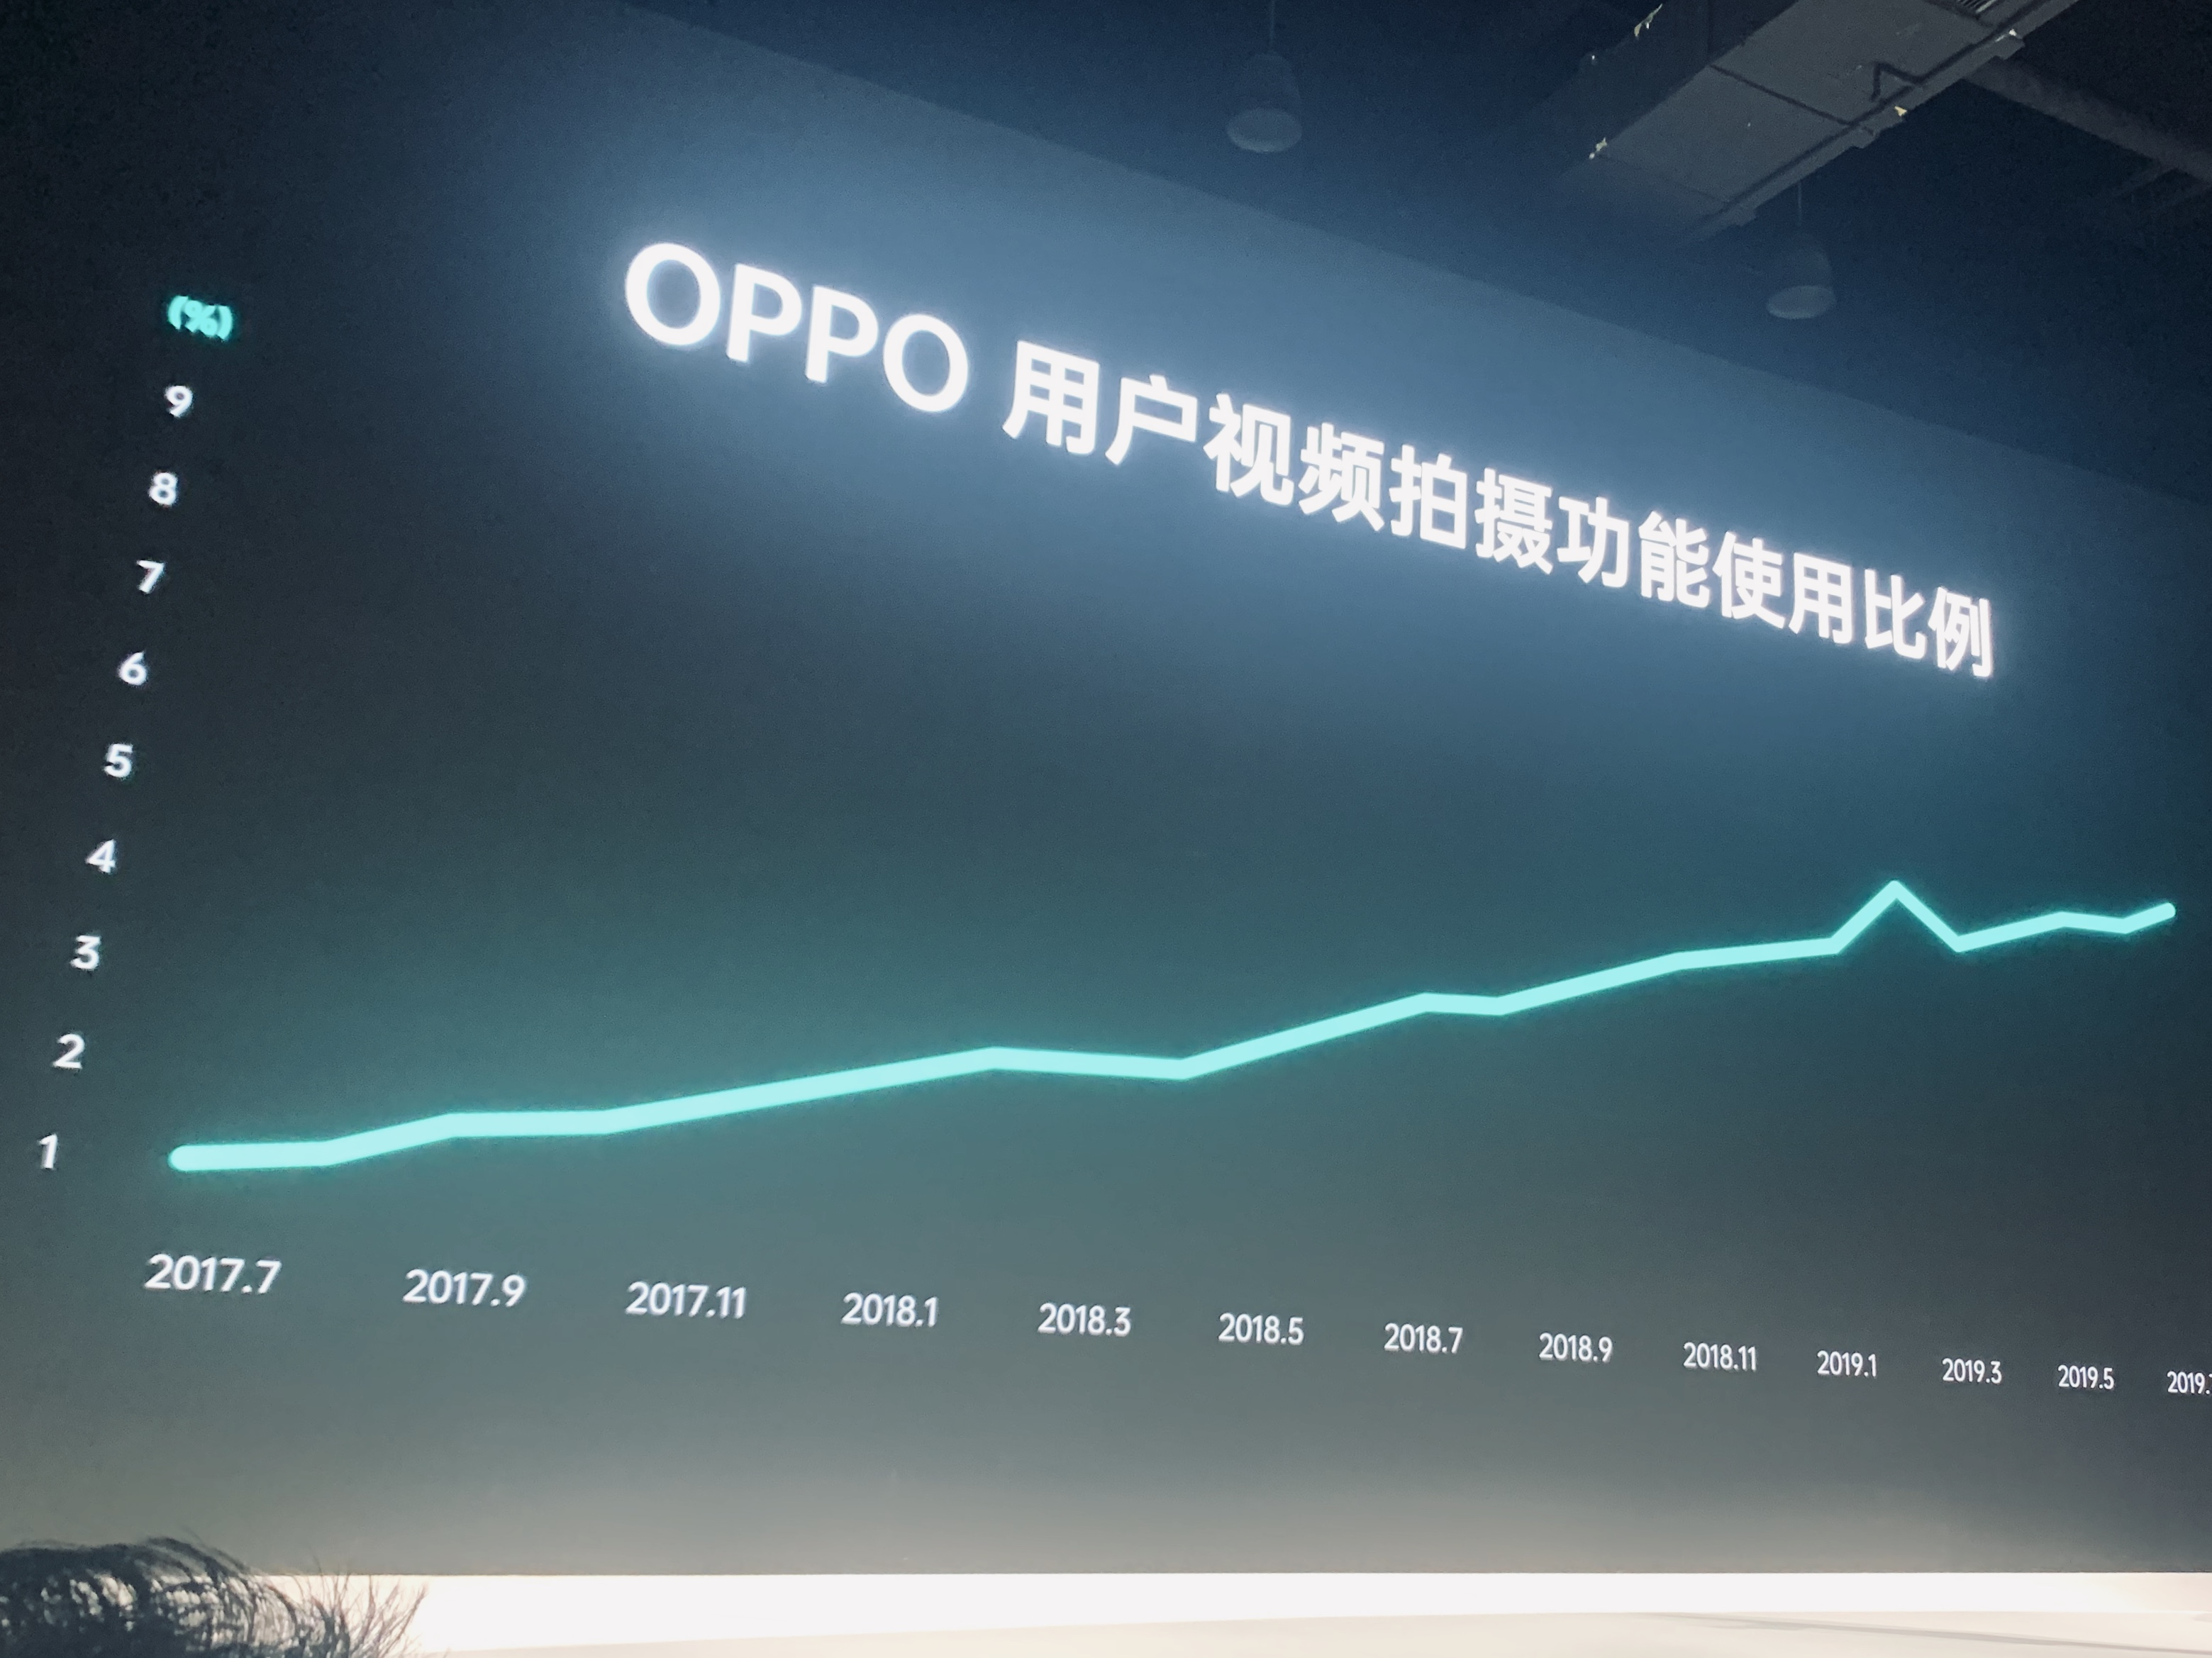 OPPO video adoption rate